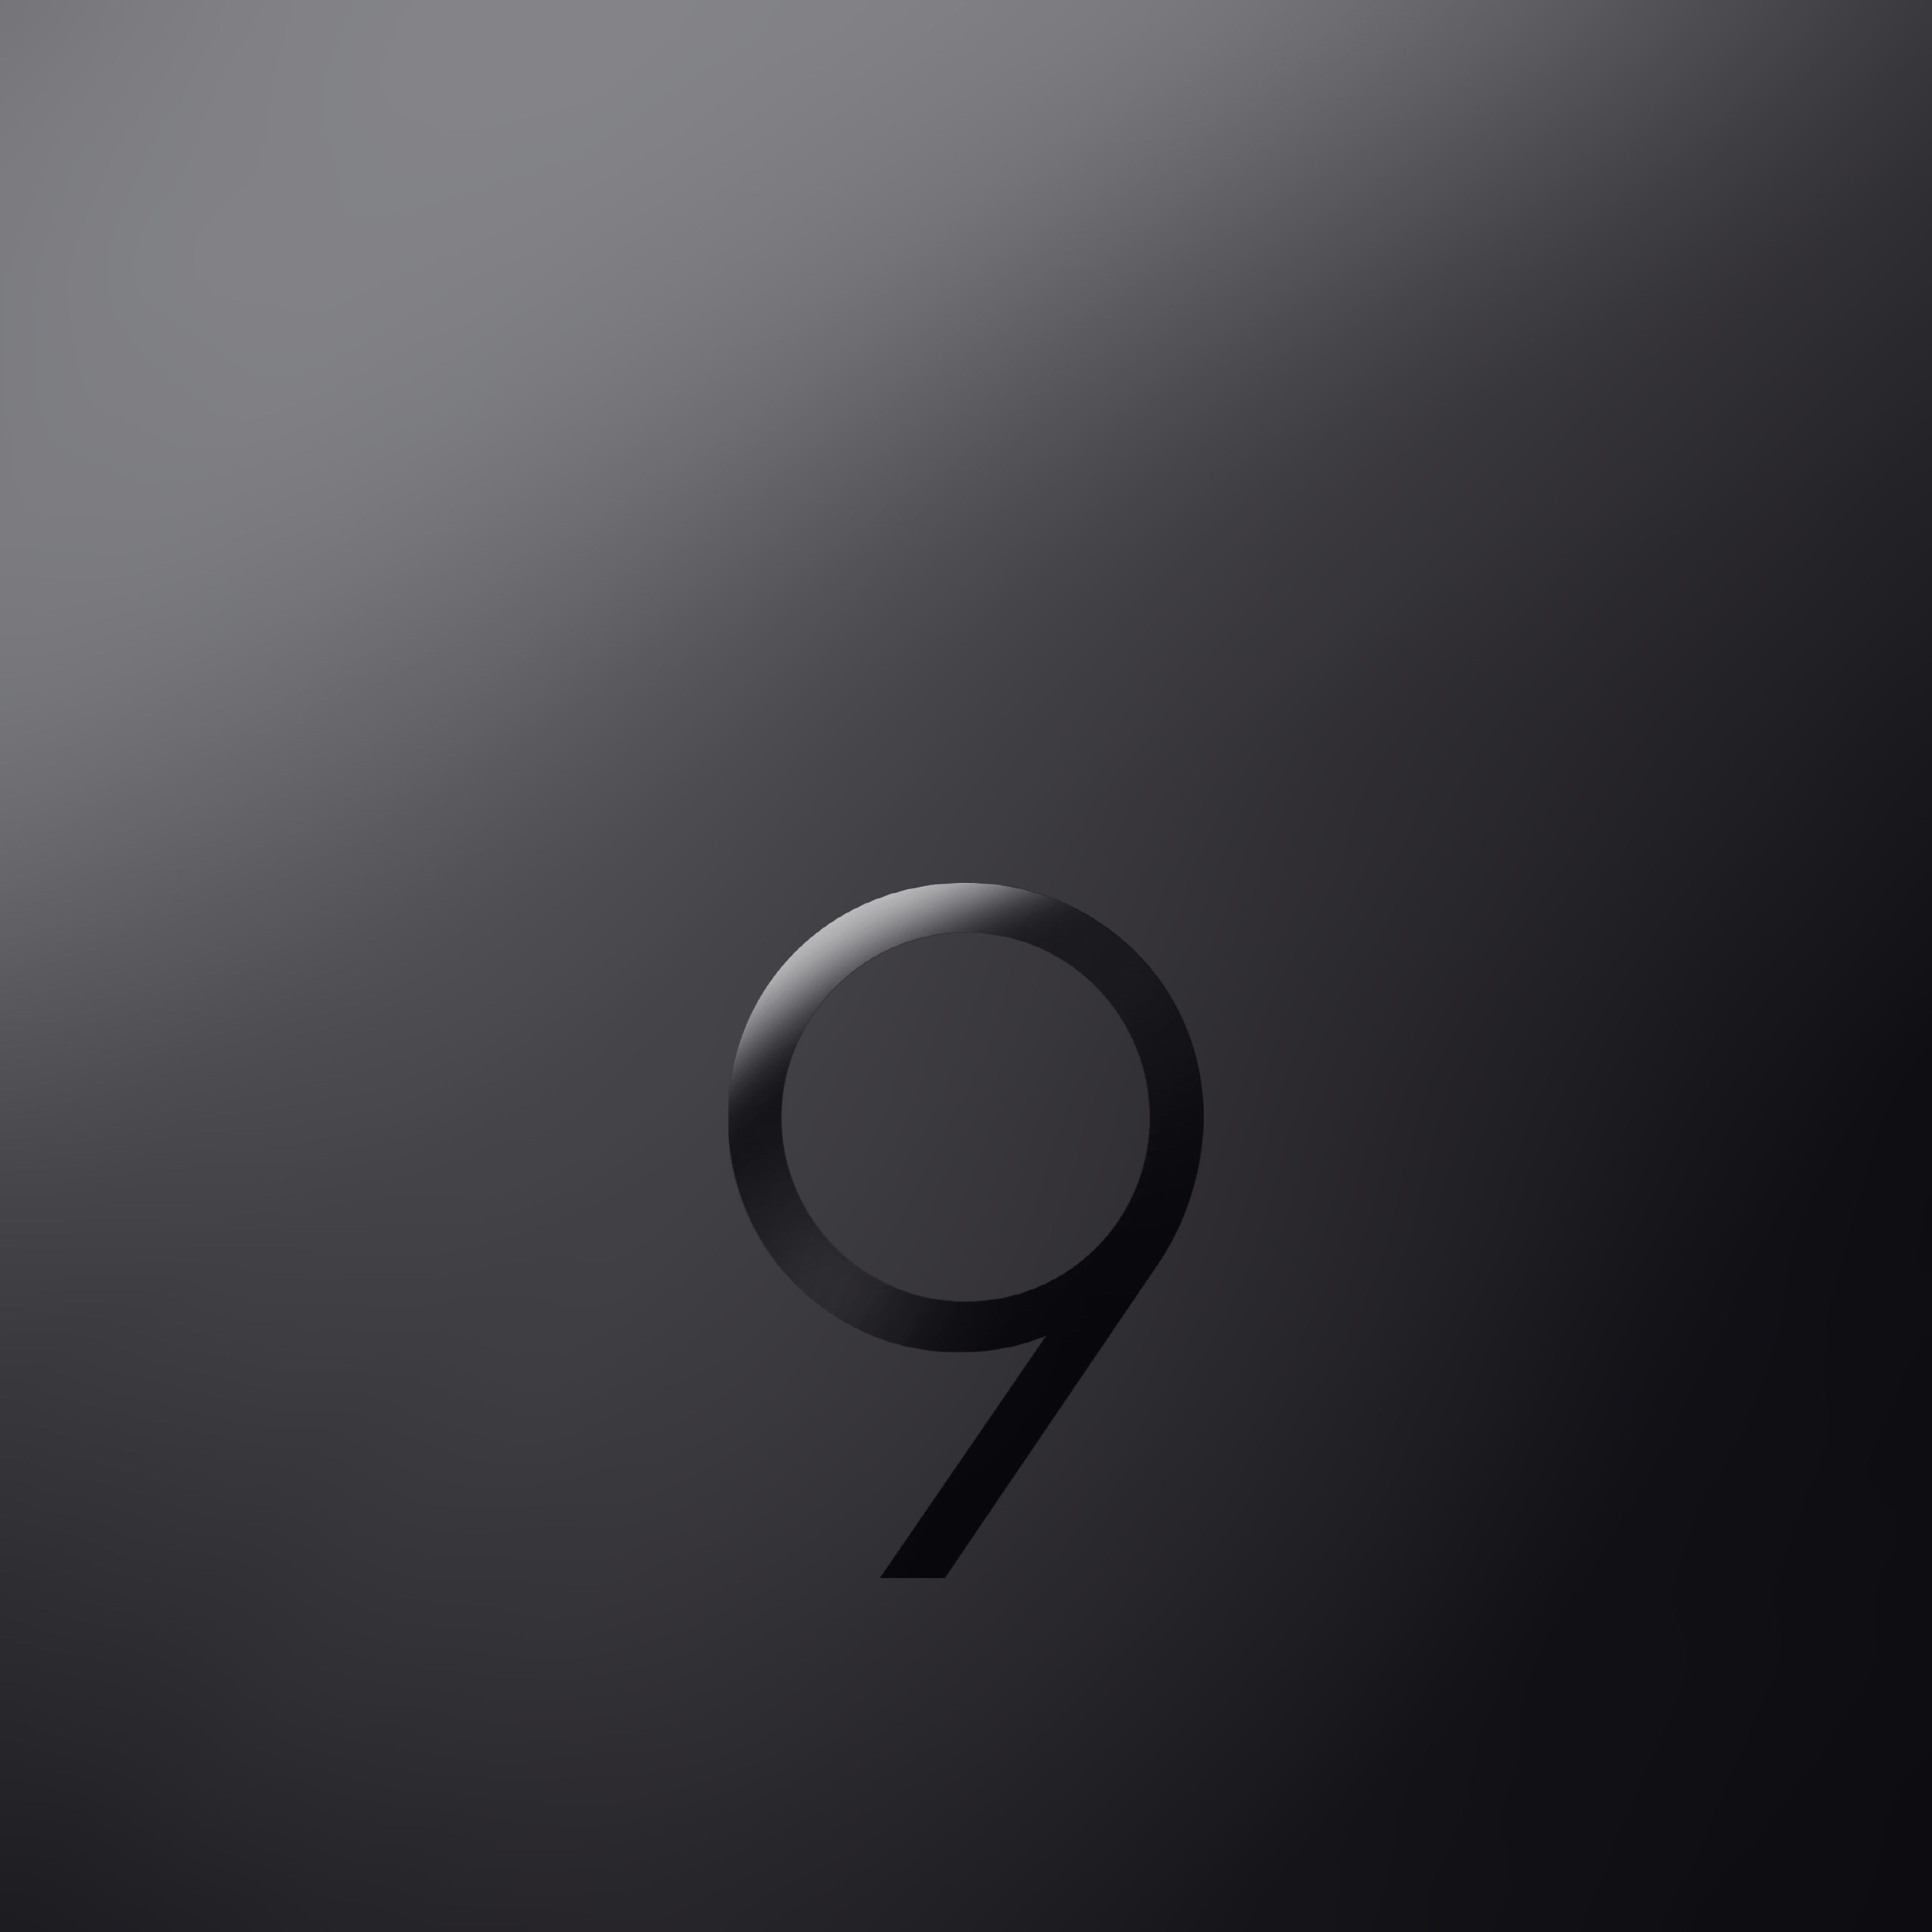 25+] Samsung Galaxy S9 Plus Wallpapers